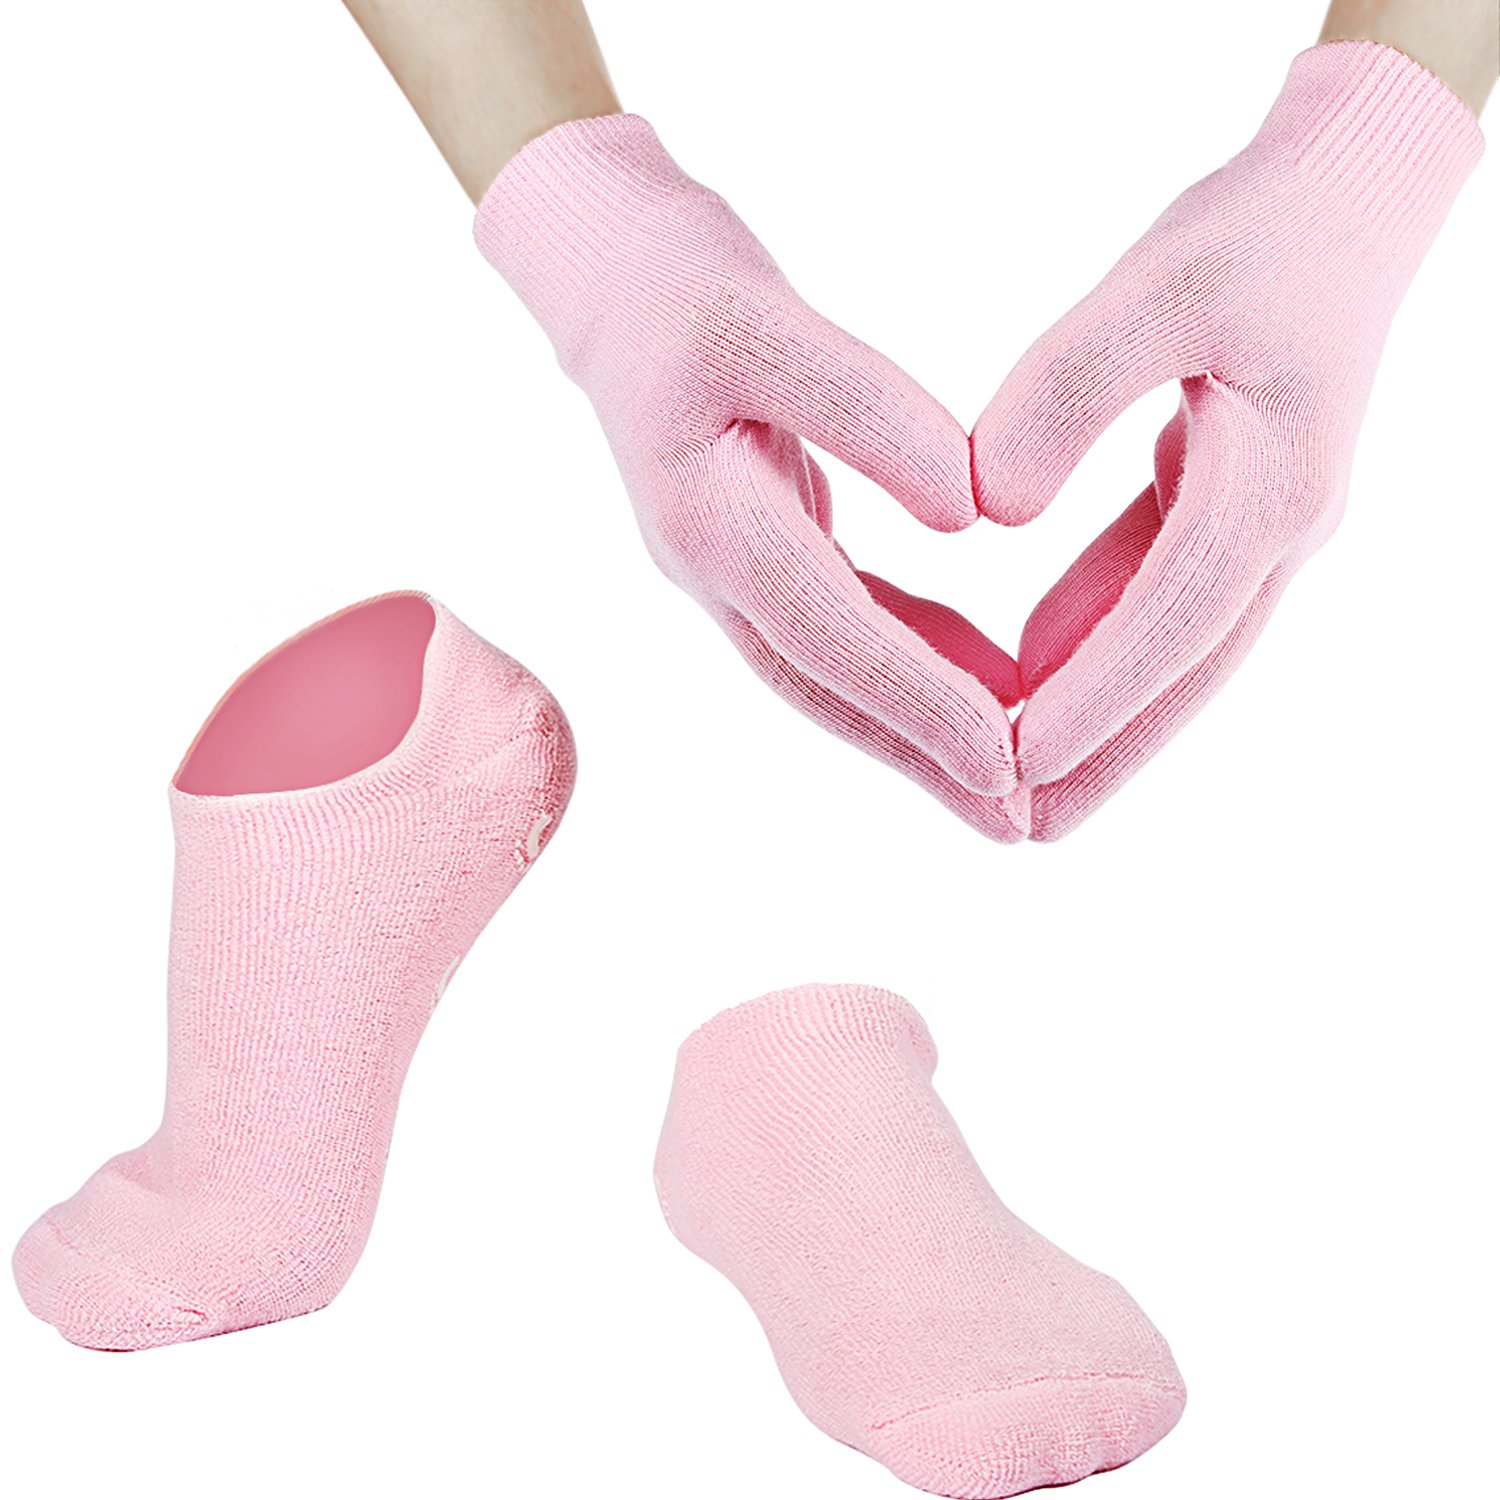 Bememo Soft Cotton Gel Moisturizing Spa Gloves and Socks for Cracked Dry Skin for Both Women and Men (Pink) by Bememo (Image #1)